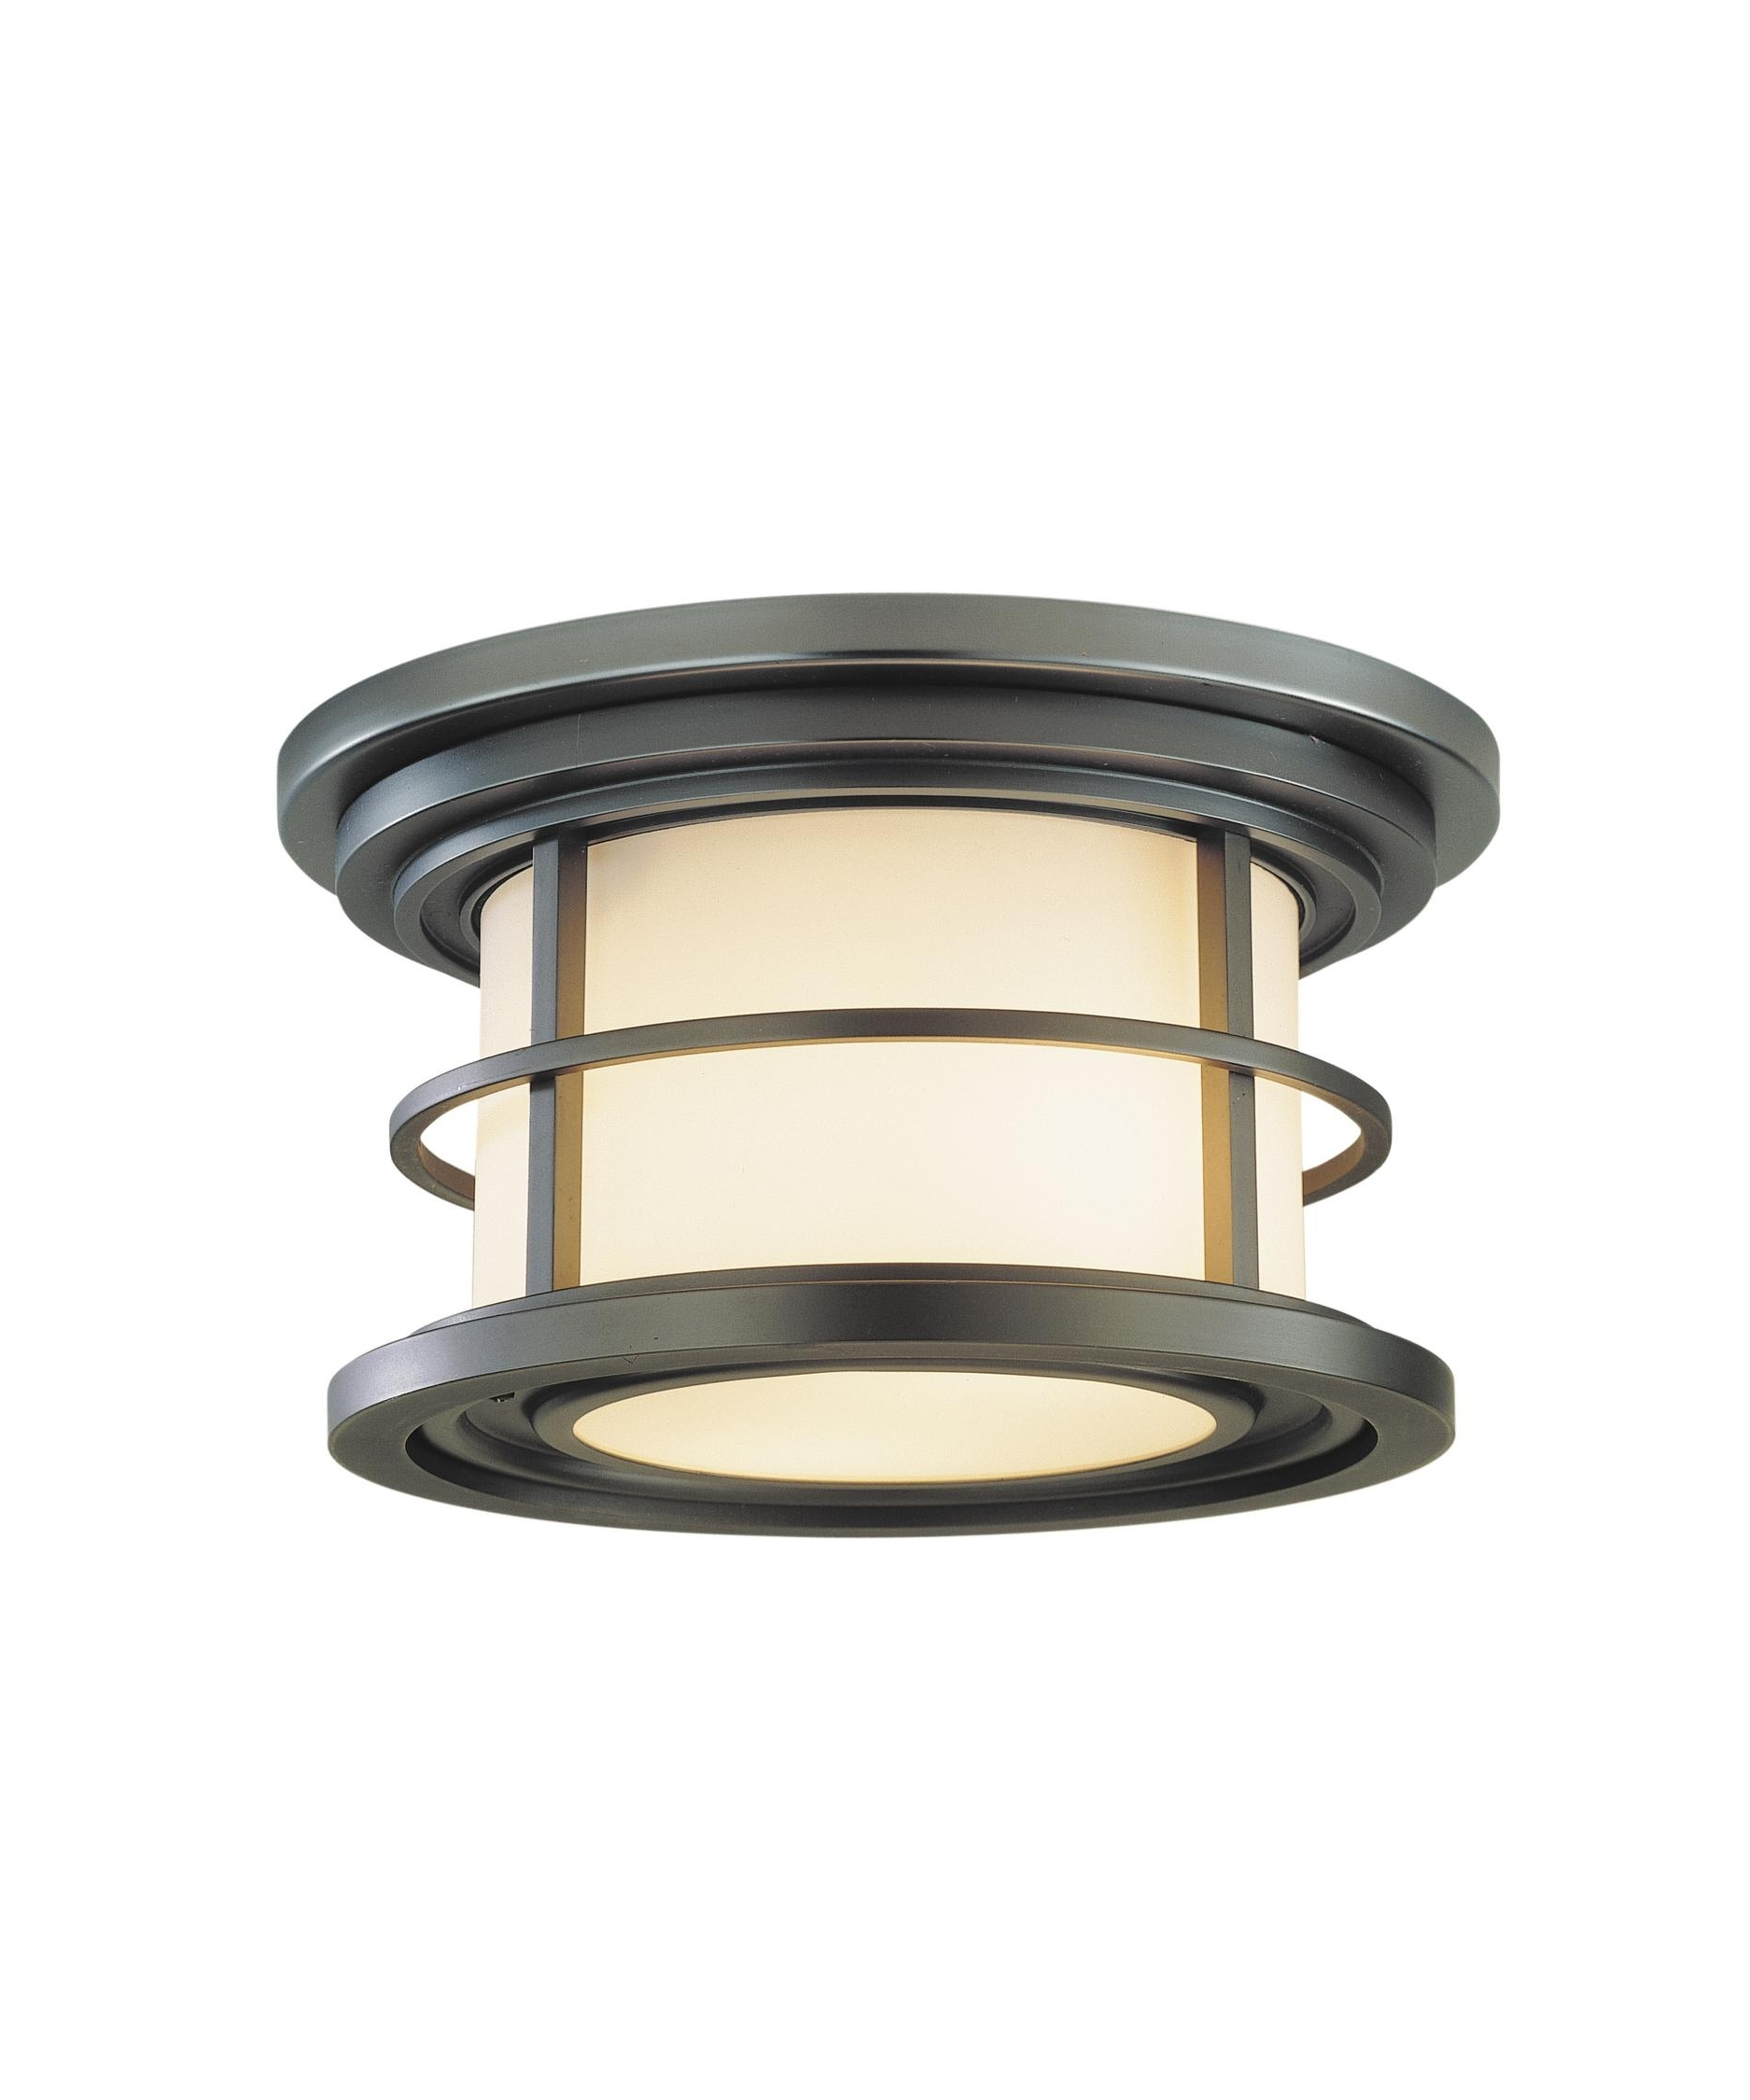 Commercial Outdoor Ceiling Lighting Fixtures Pertaining To Trendy Murray Feiss Ol2213 Lighthouse 10 Inch Wide 2 Light Outdoor Flush (View 4 of 20)